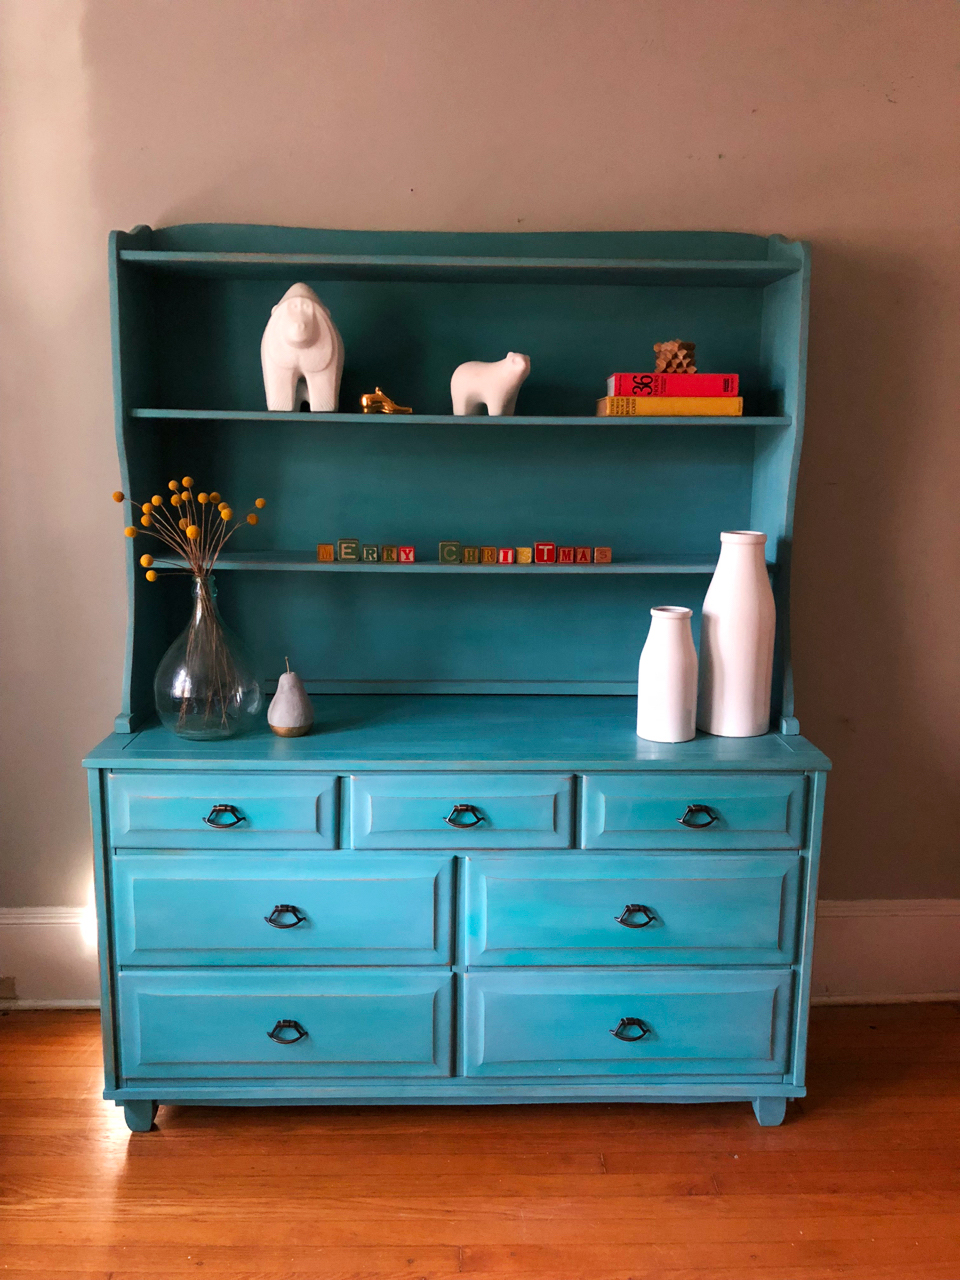 jo-torrijos-a-simpler-design-atlanta-painted-furniture-turquoise-buffet-hutch-2.jpg